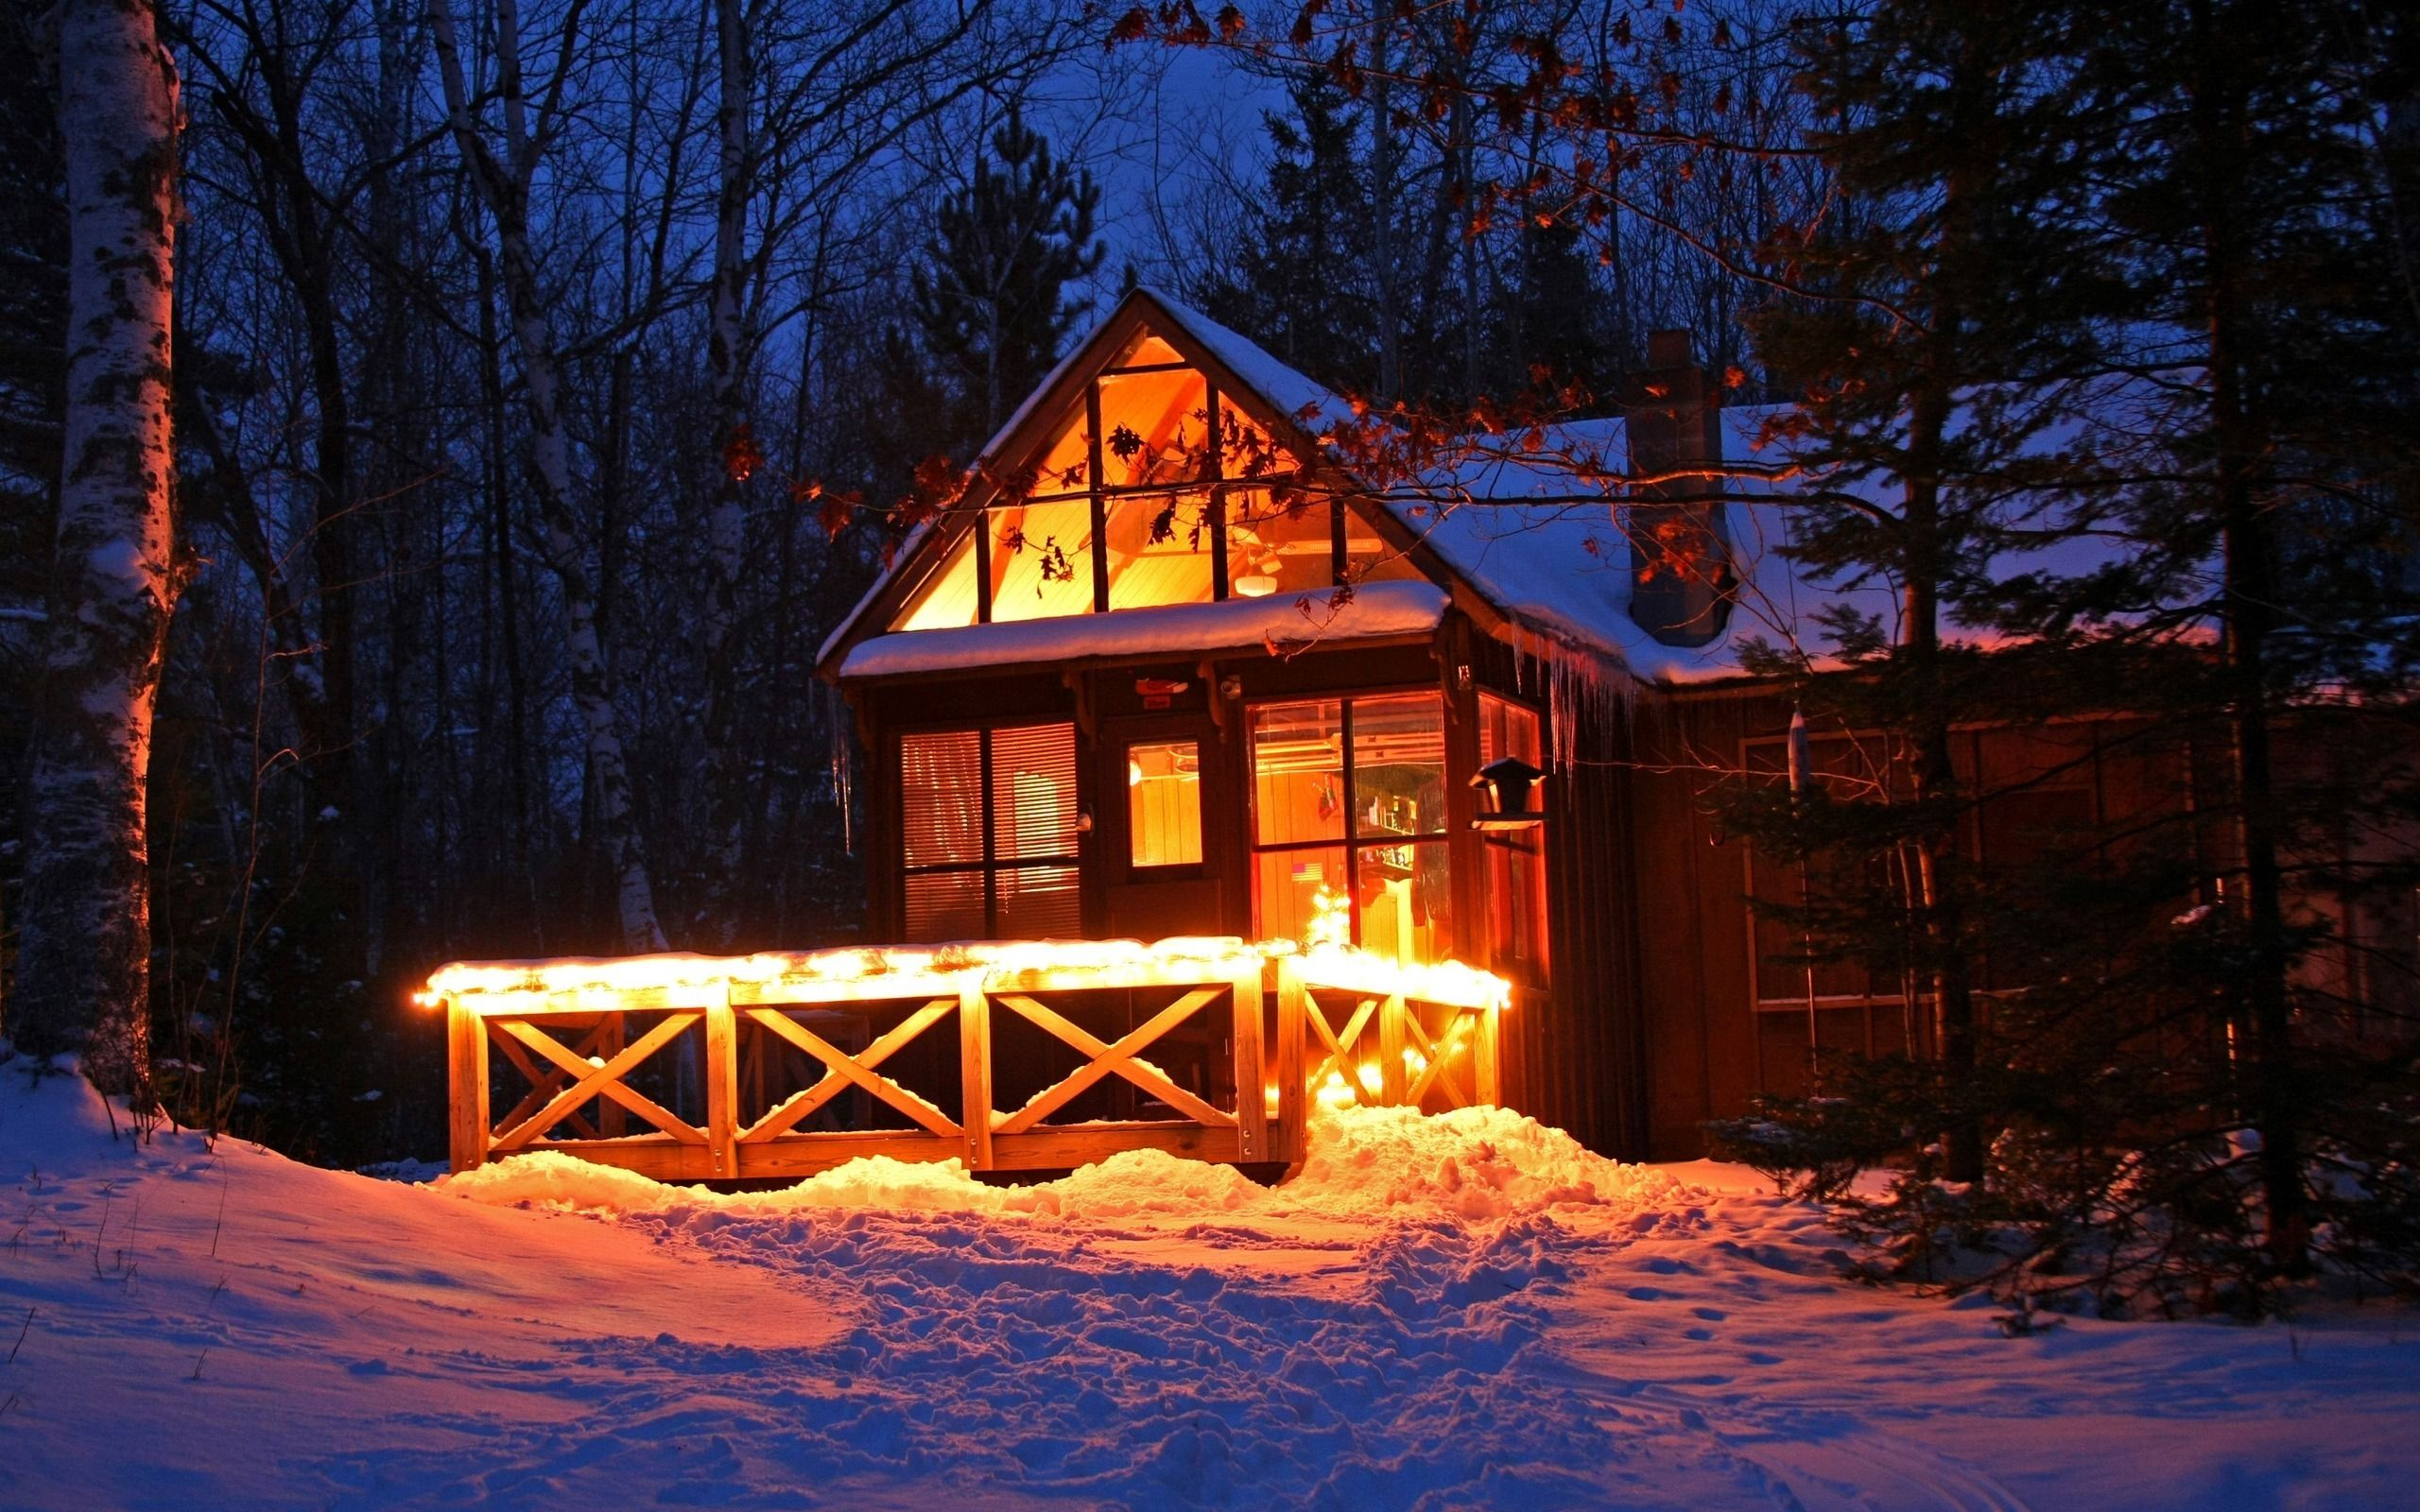 Snow Lights Night Download Wallpaper Winter Snow Night Forest